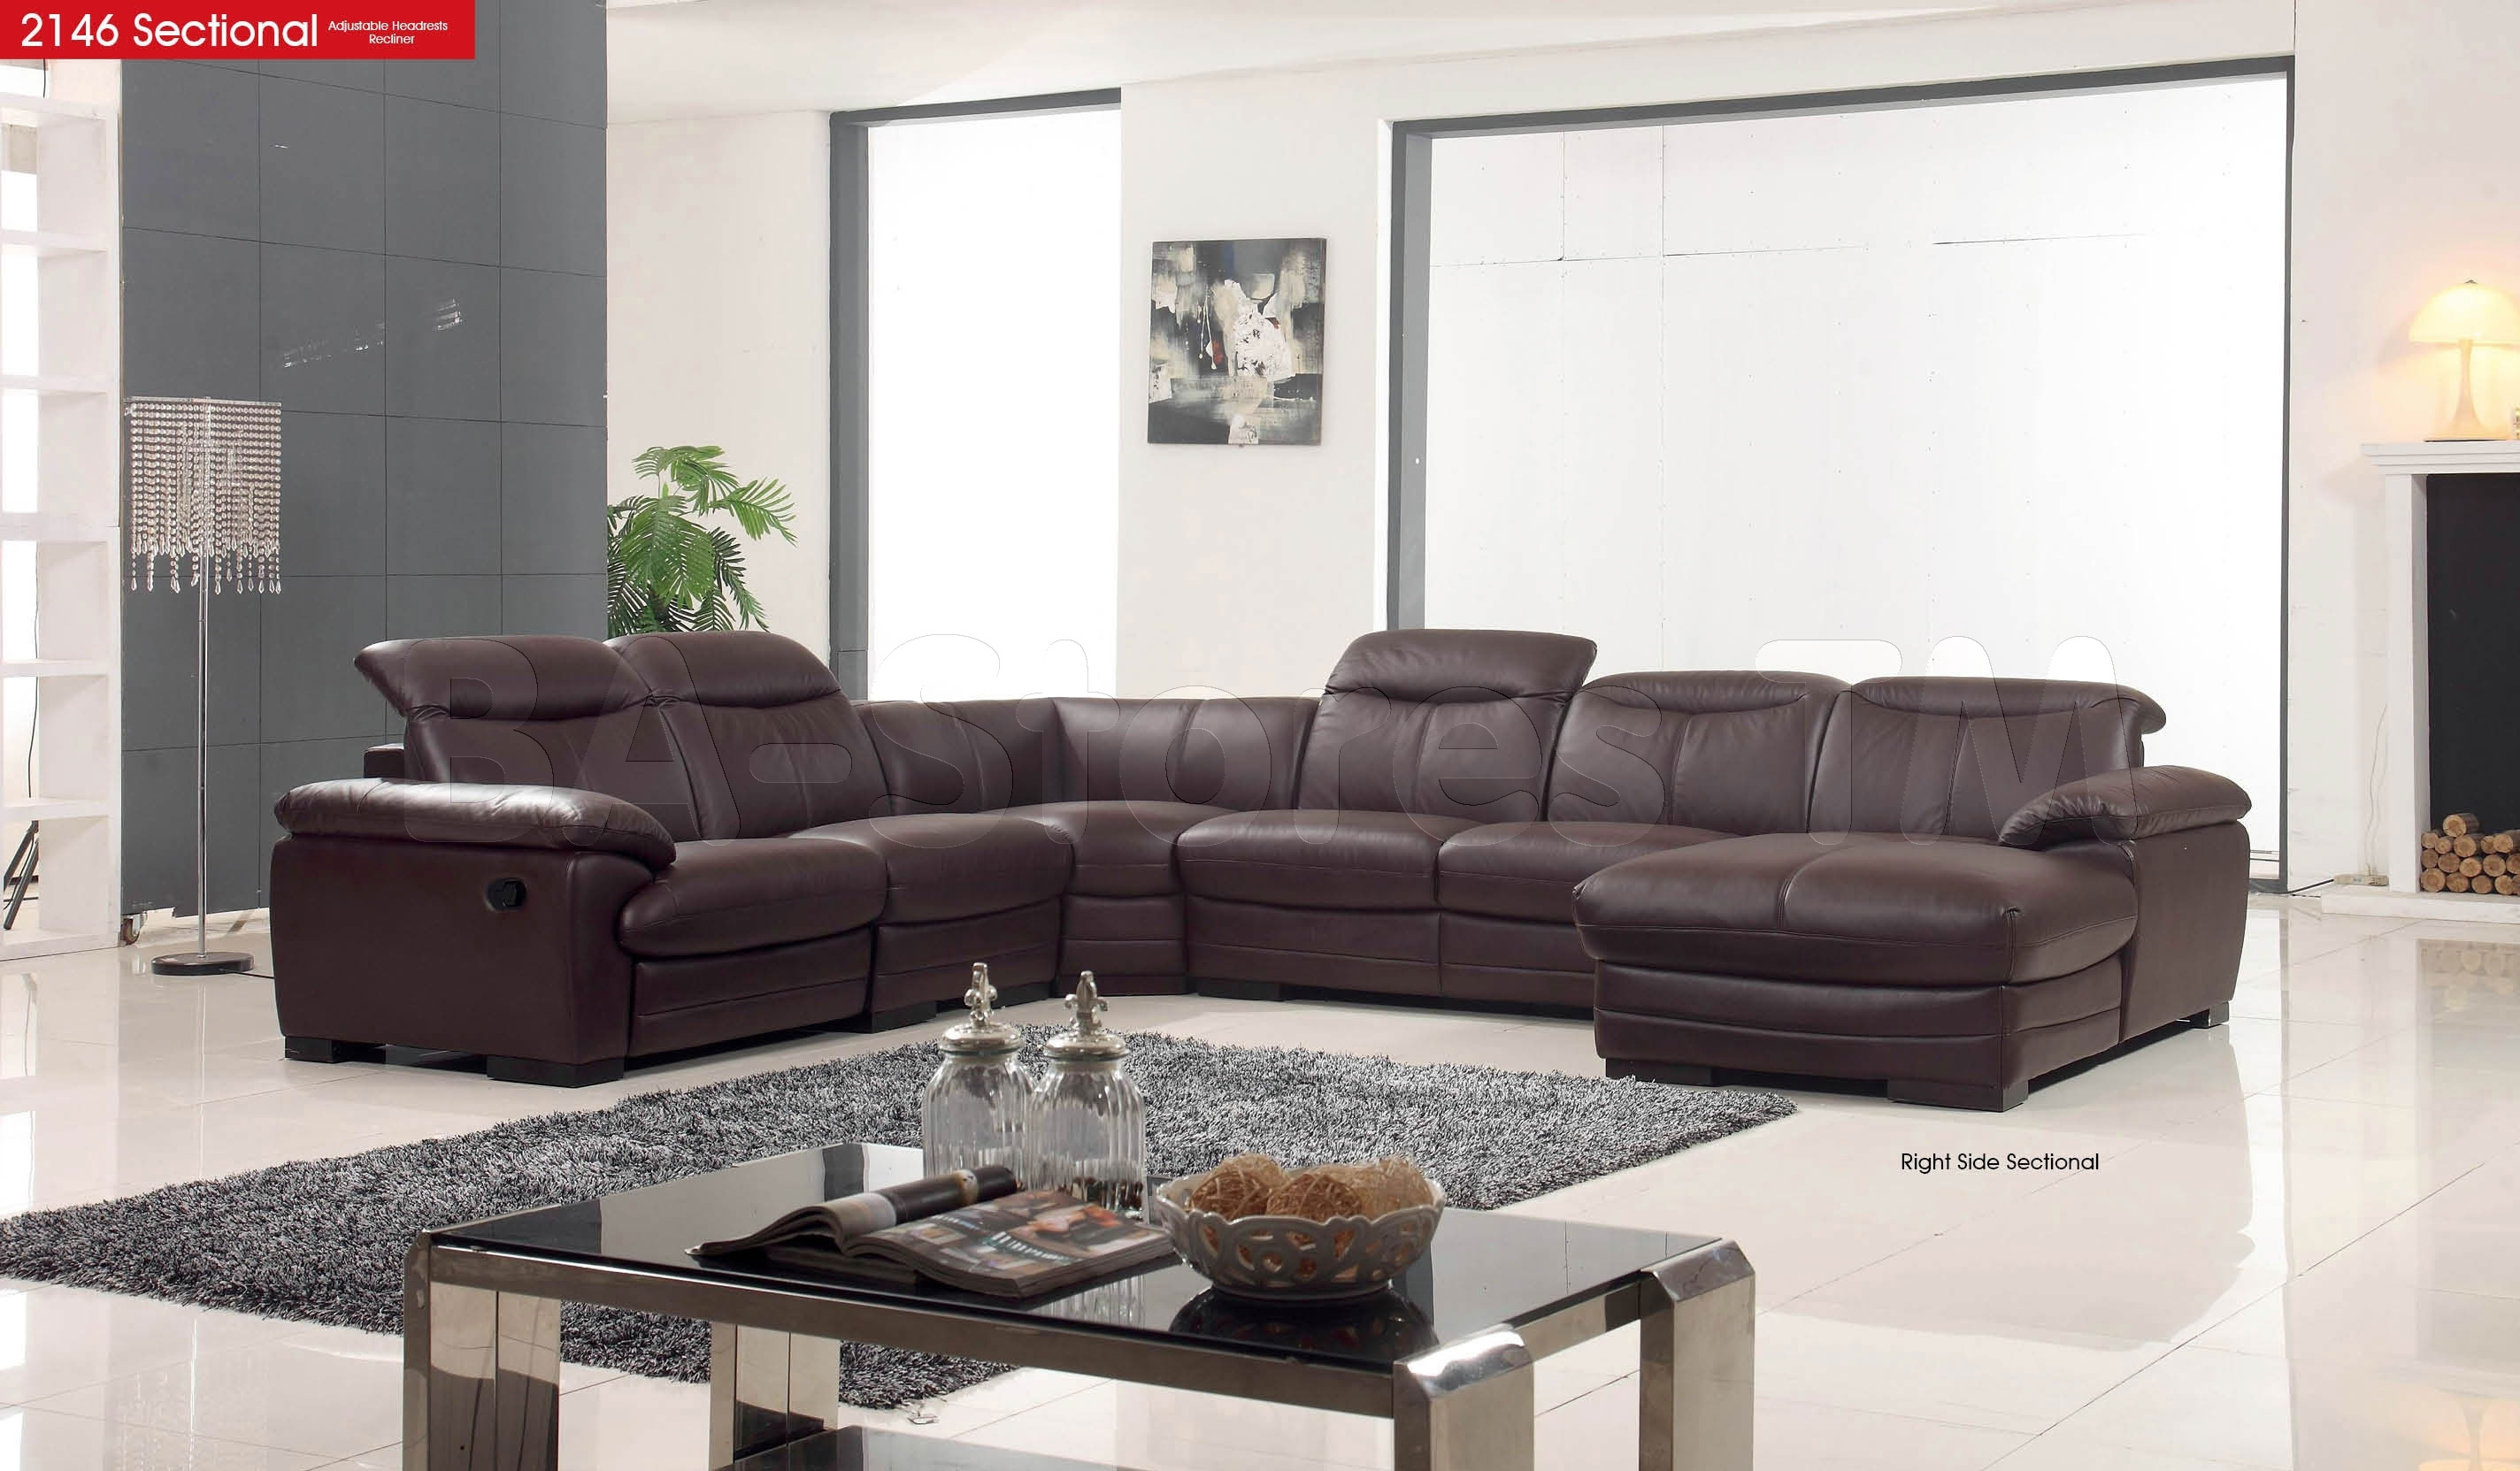 2146 Sectional Sofa   $4,100.00 : Furniture Store Shipped Free In Pertaining To Nj Sectional Sofas (Photo 9 of 10)